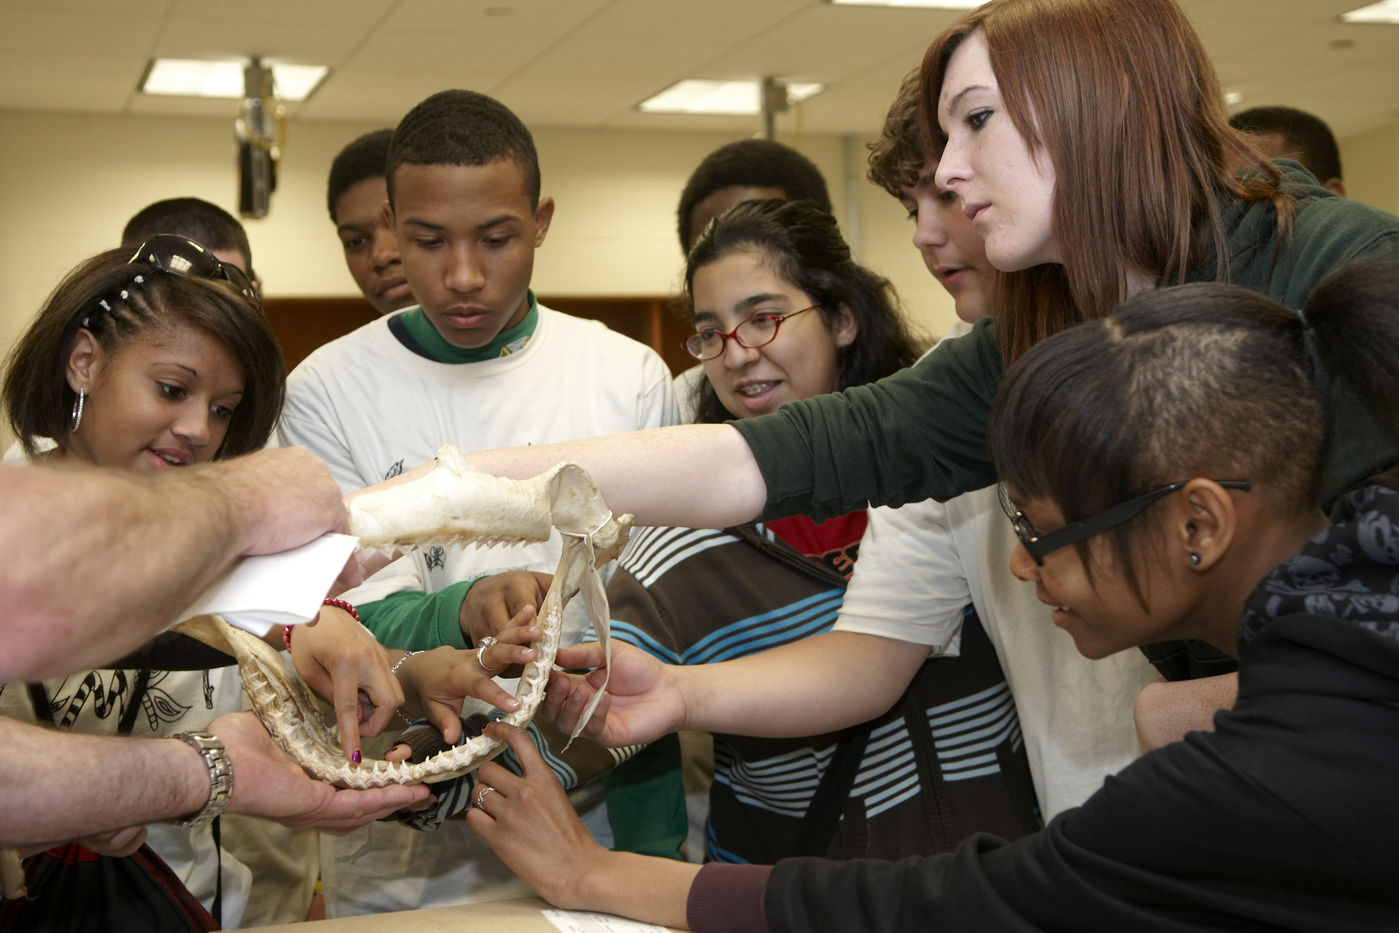 Student group on a behind-the-scenes tour gather around a skeletal jaw. Several reach out to touch the specimen; other students stand in the background.